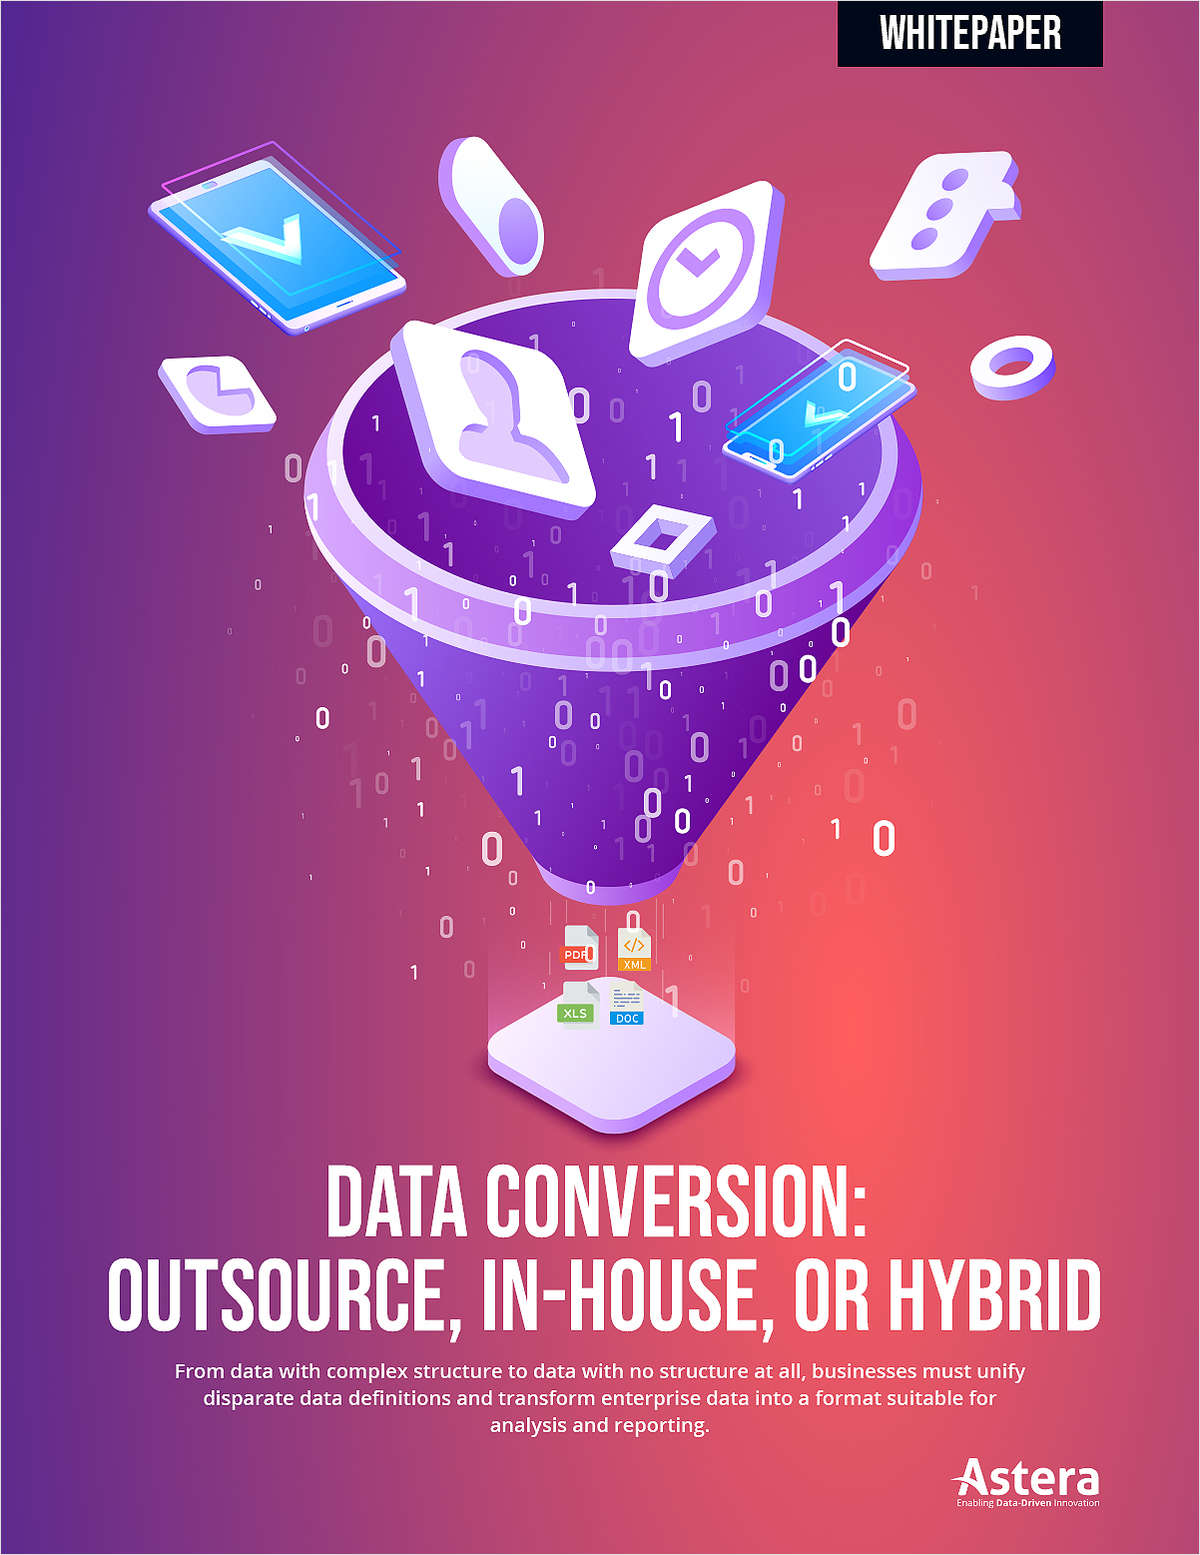 Data Conversion: Outsourced, In-House, or Hybrid?